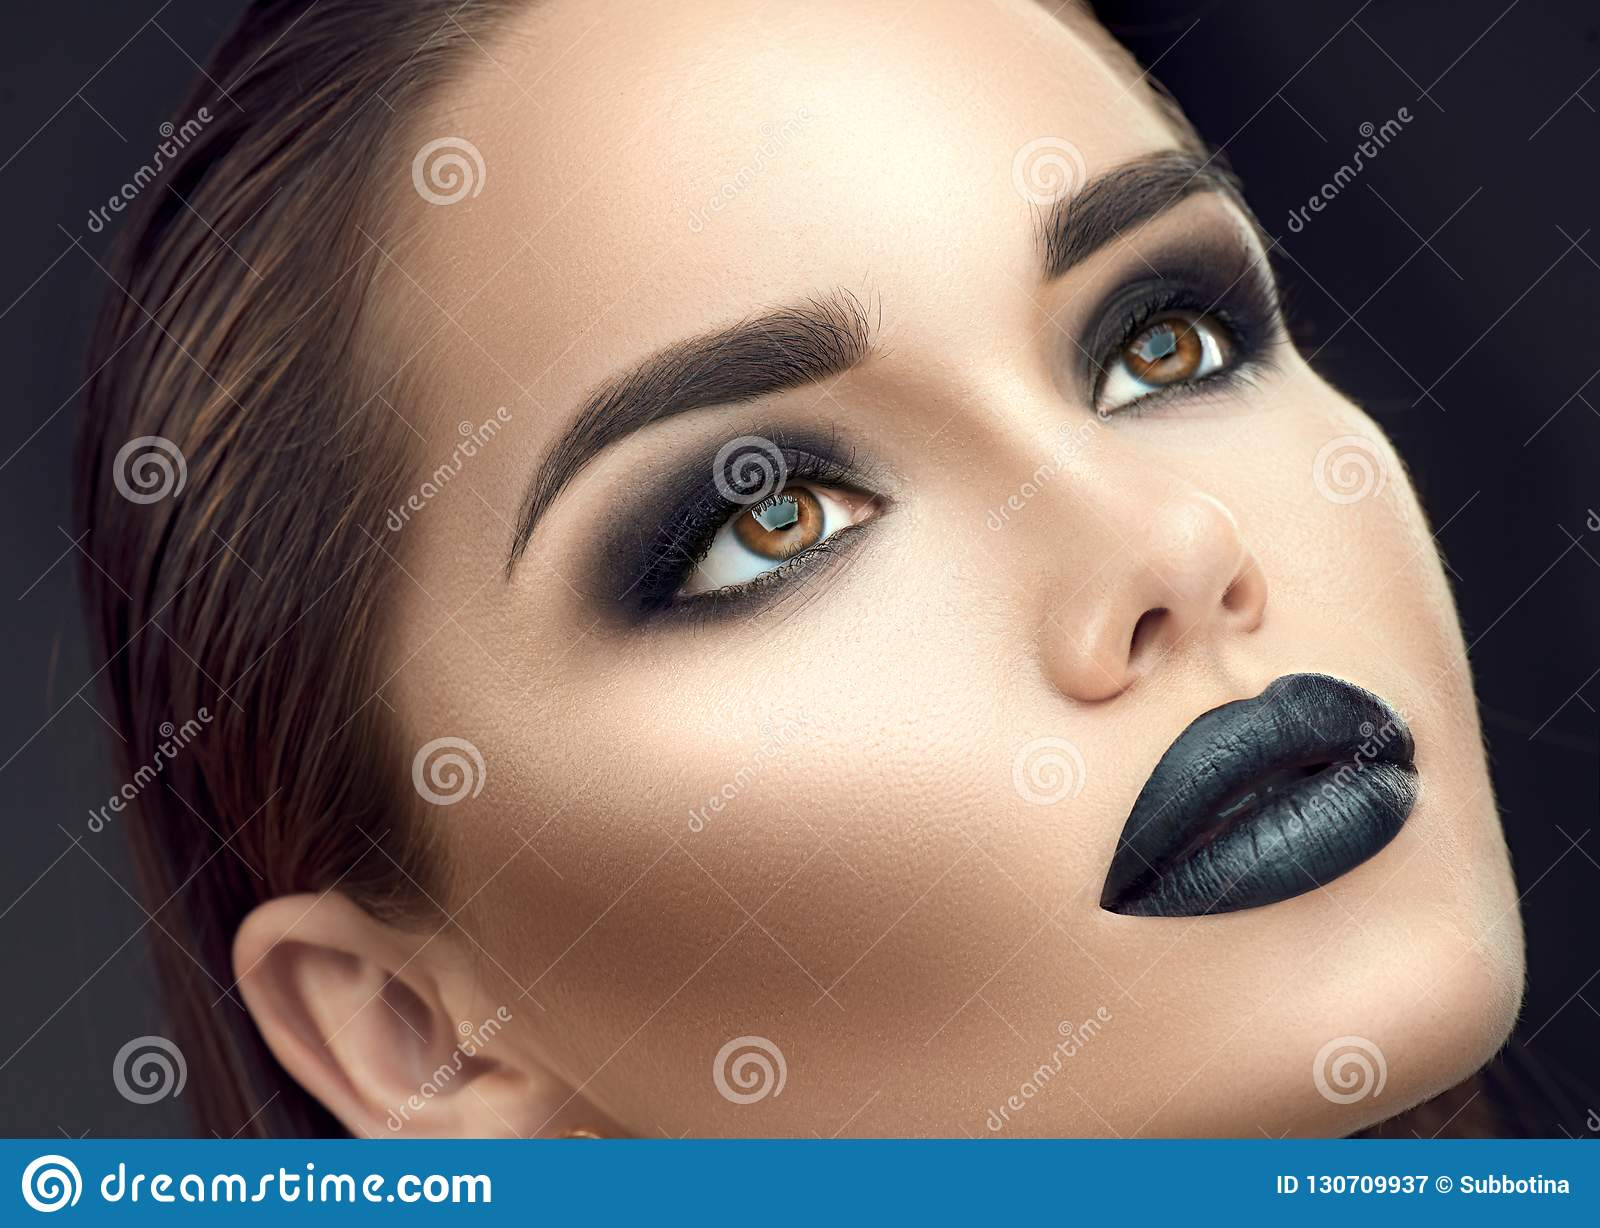 Fashion model girl portrait with trendy gothic black makeup. Young woman with black lipstick, dark smokey eyes, face contouring, beauty eyebrows